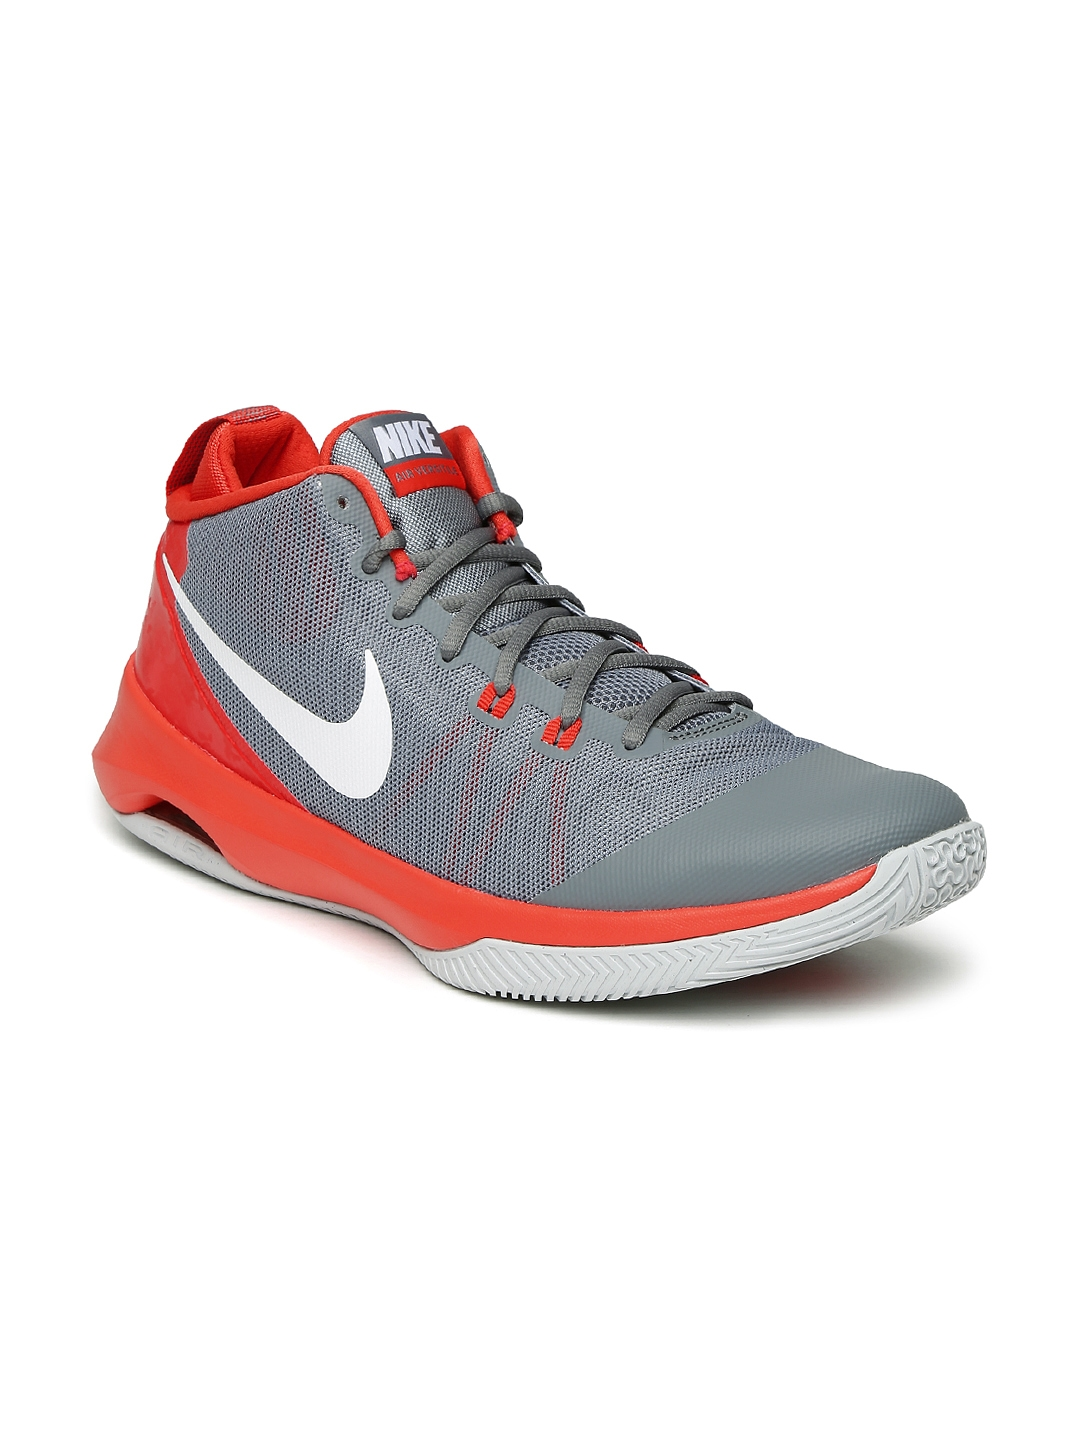 406b6ae08a90 Buy Nike Men Grey Air Versatile Basketball Shoes - Sports Shoes for ...